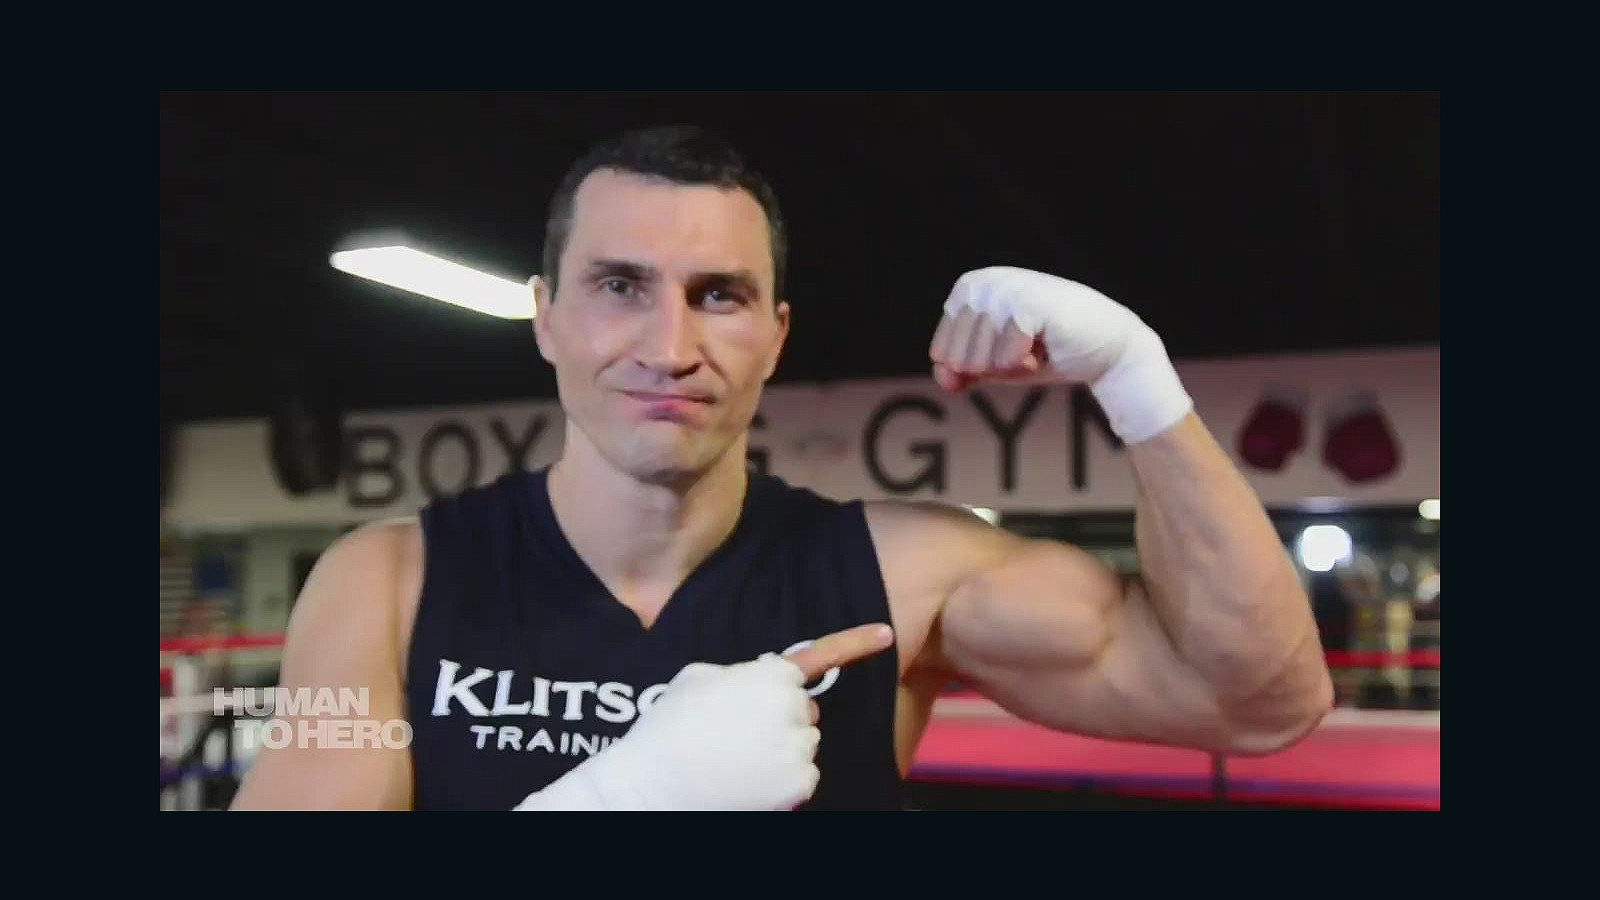 Wladimir Klitschko: Fighting brother Vitali was brutal - CNN